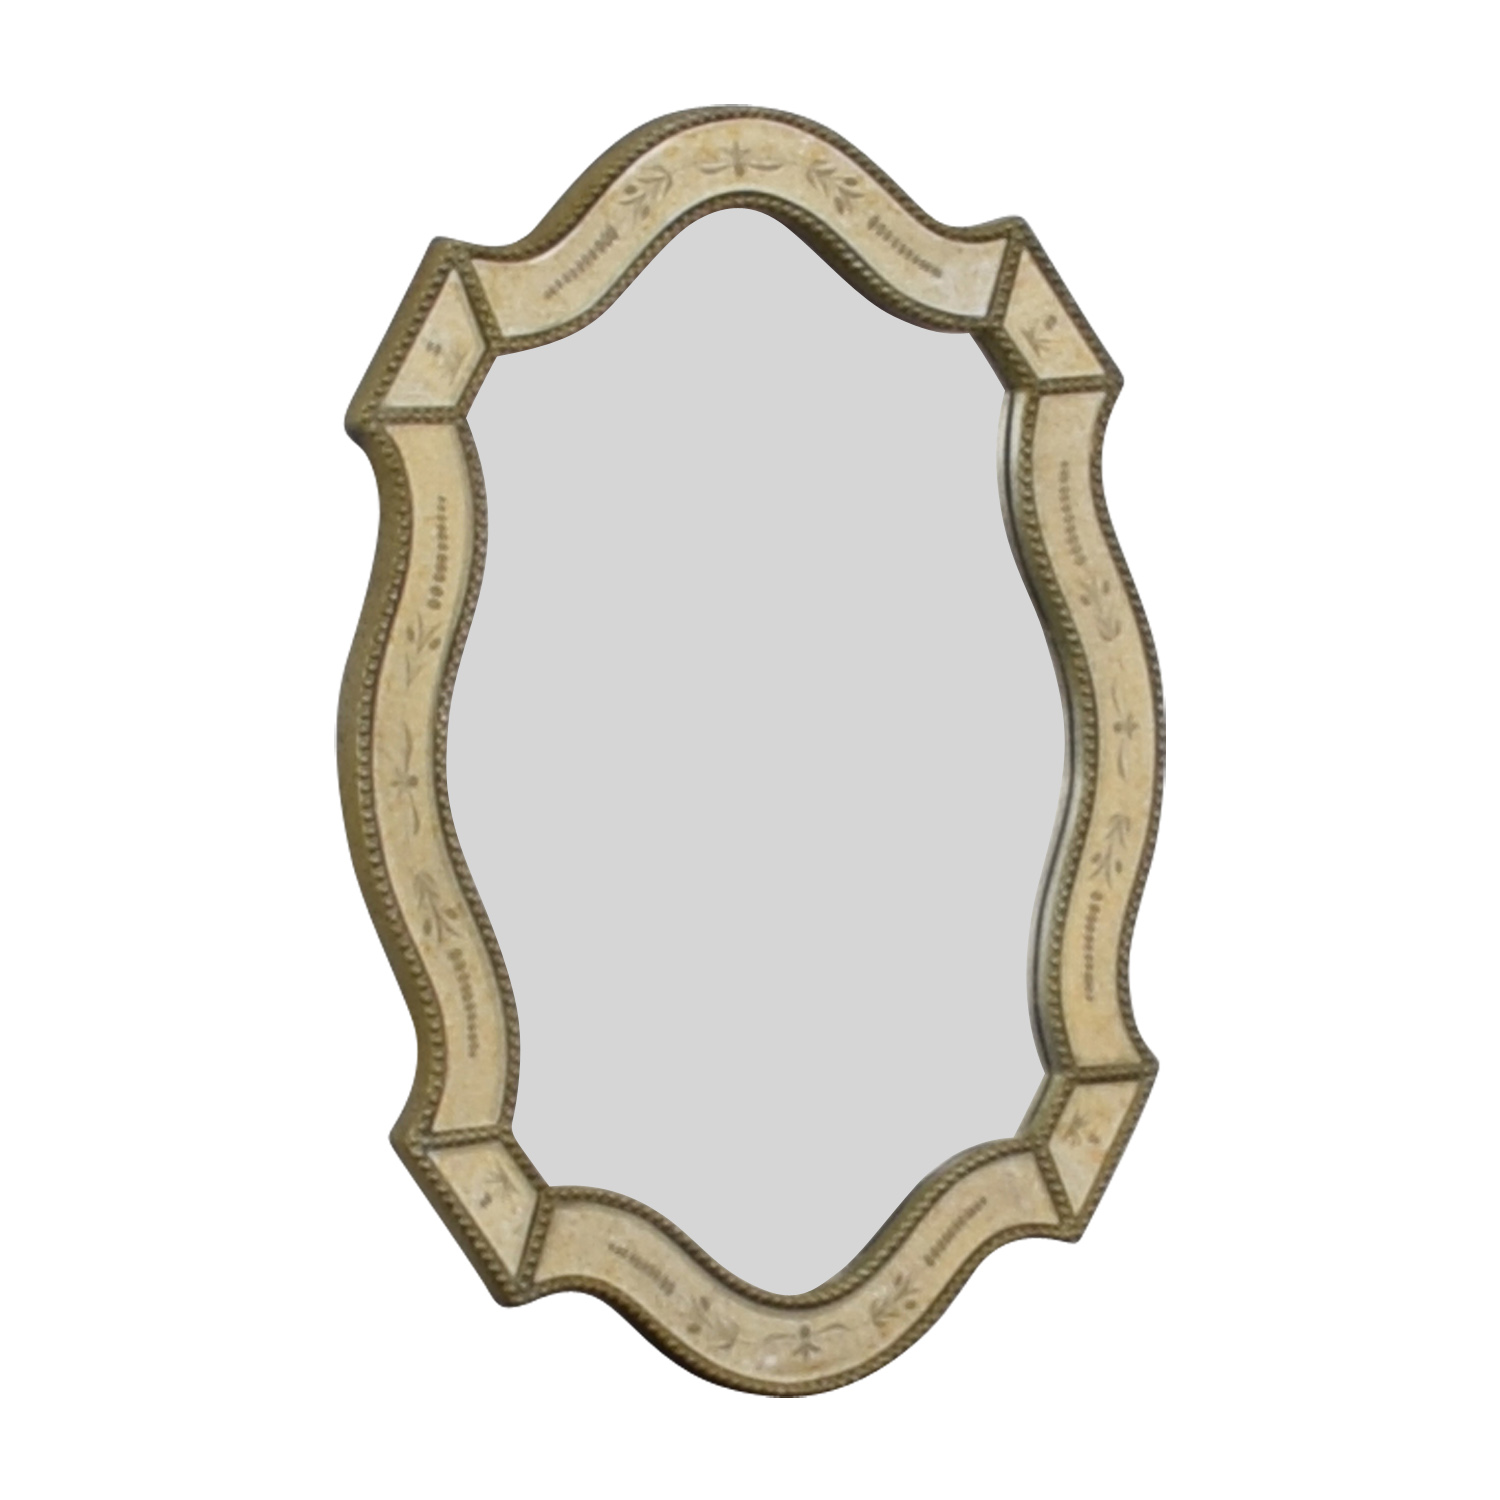 Uttermost Uttermost Distressed Gold Framed Wall Mirror for sale